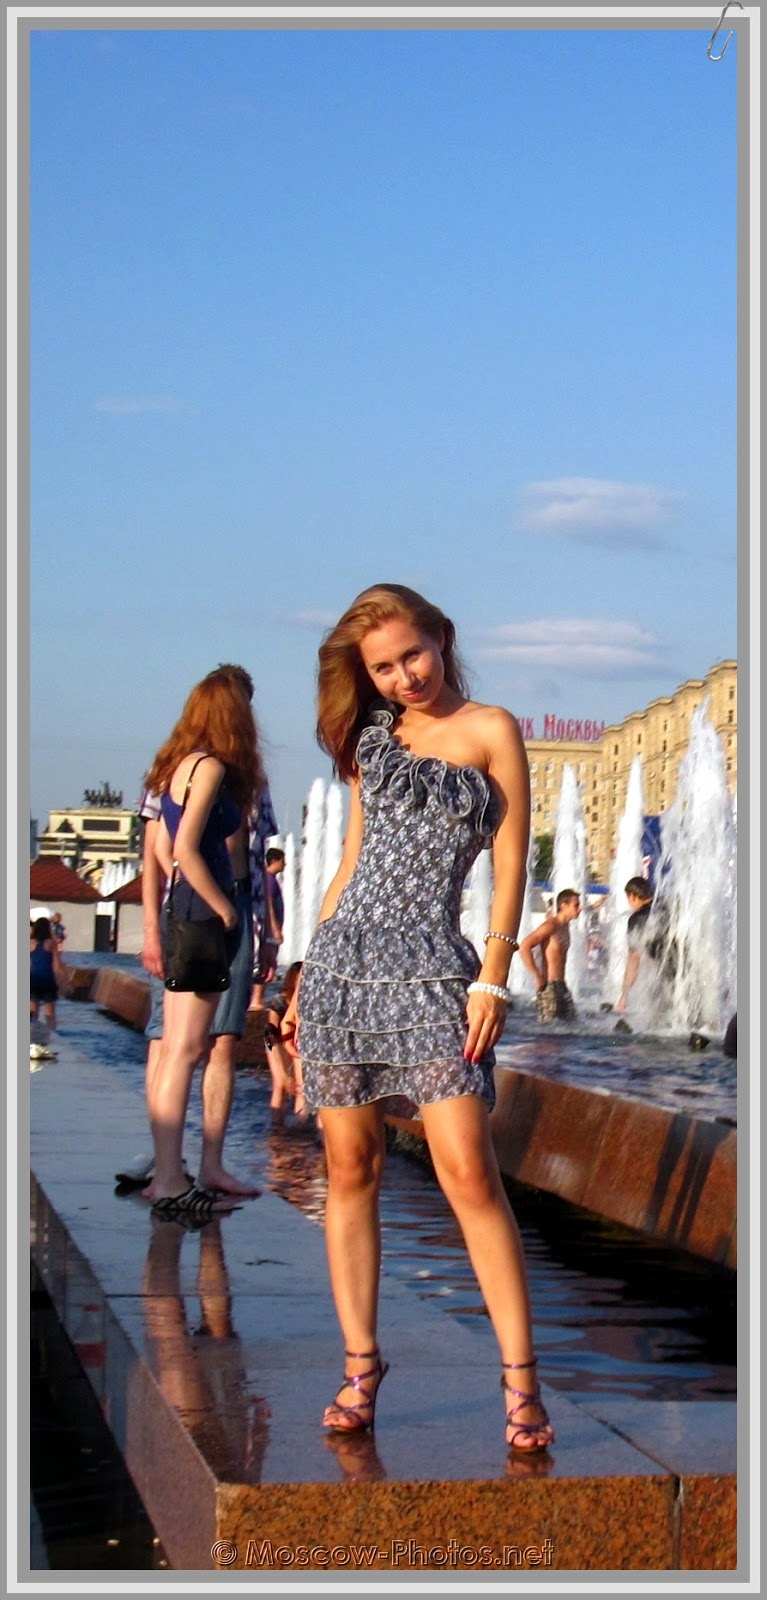 Moscow Girls and Hot Summer